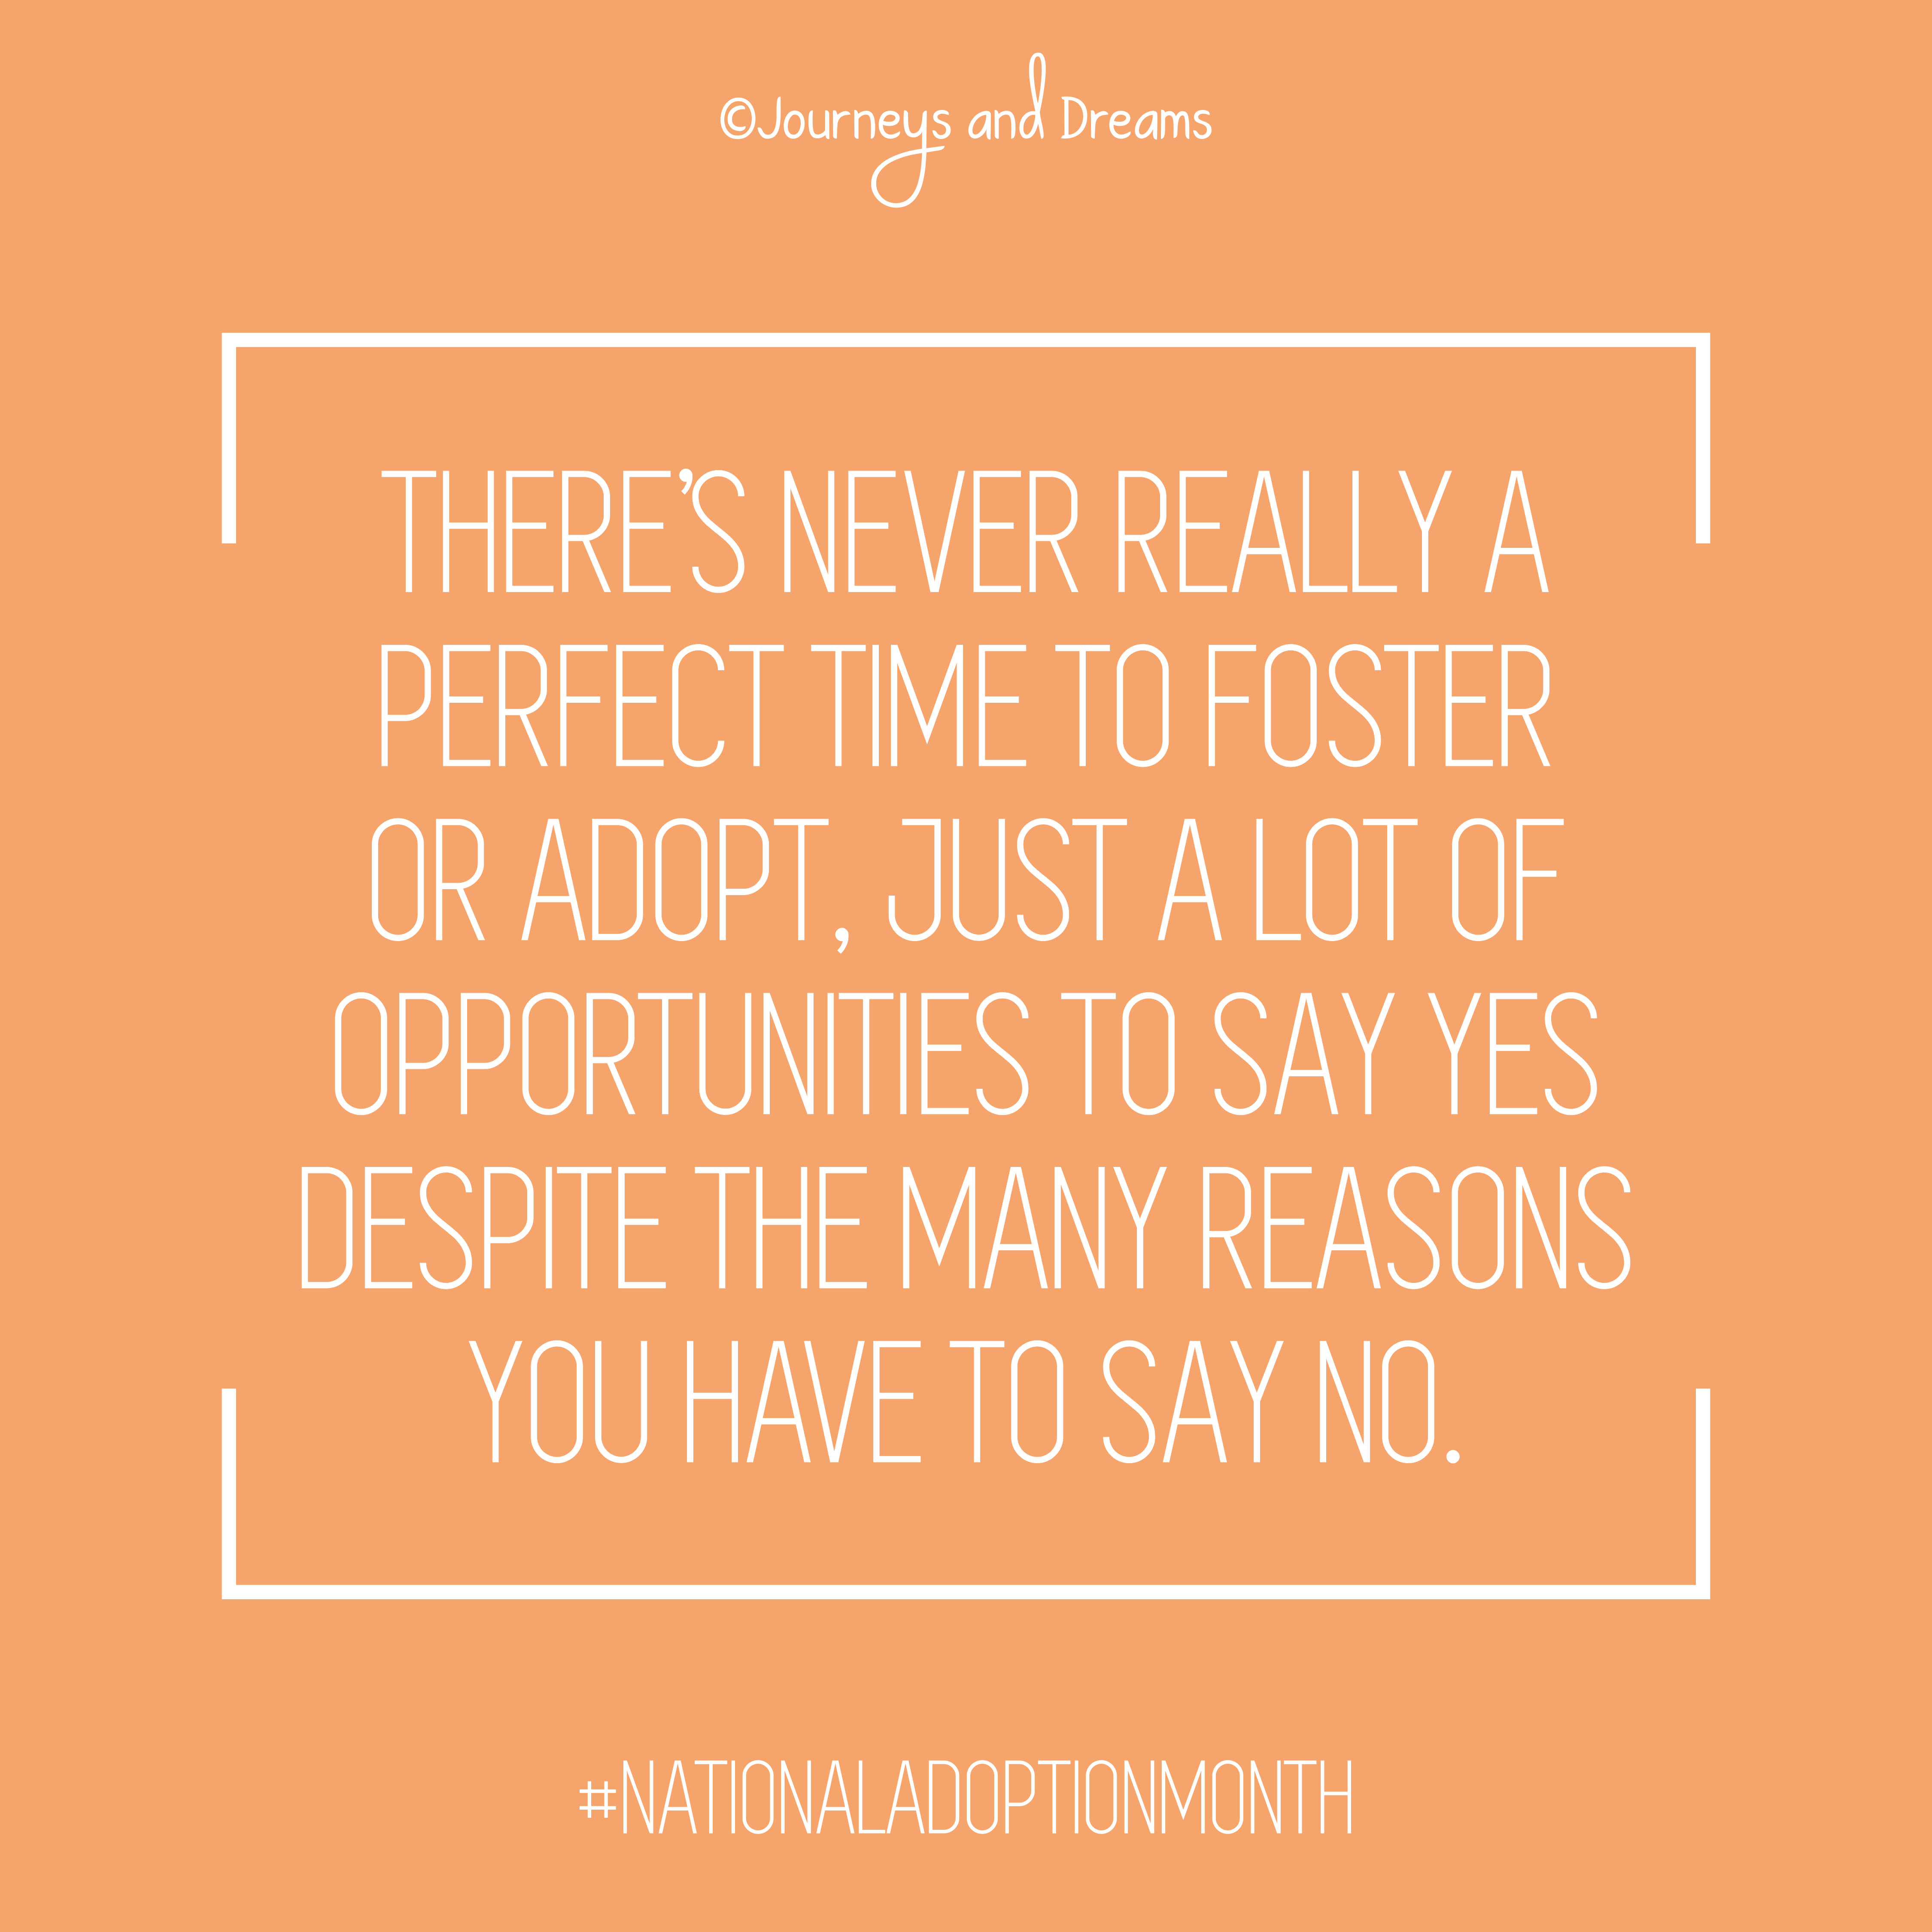 Adoption Quotes   Foster Care Quotes   National Adoption Month   National Adoption Day   Adoption Day   Gotcha Day   Adoption   Foster Care   Adoption Blog   Foster Care Blog   Adoption Binder   Adoption Paperwork   Home Study   Adoption Organization   Planner   Printable    Journeys And Dreams     There's never really a perfect time to foster or adopt.  Just a lot of opportunities to say yes despite the many reasons i have to say no. #adoptionquotes